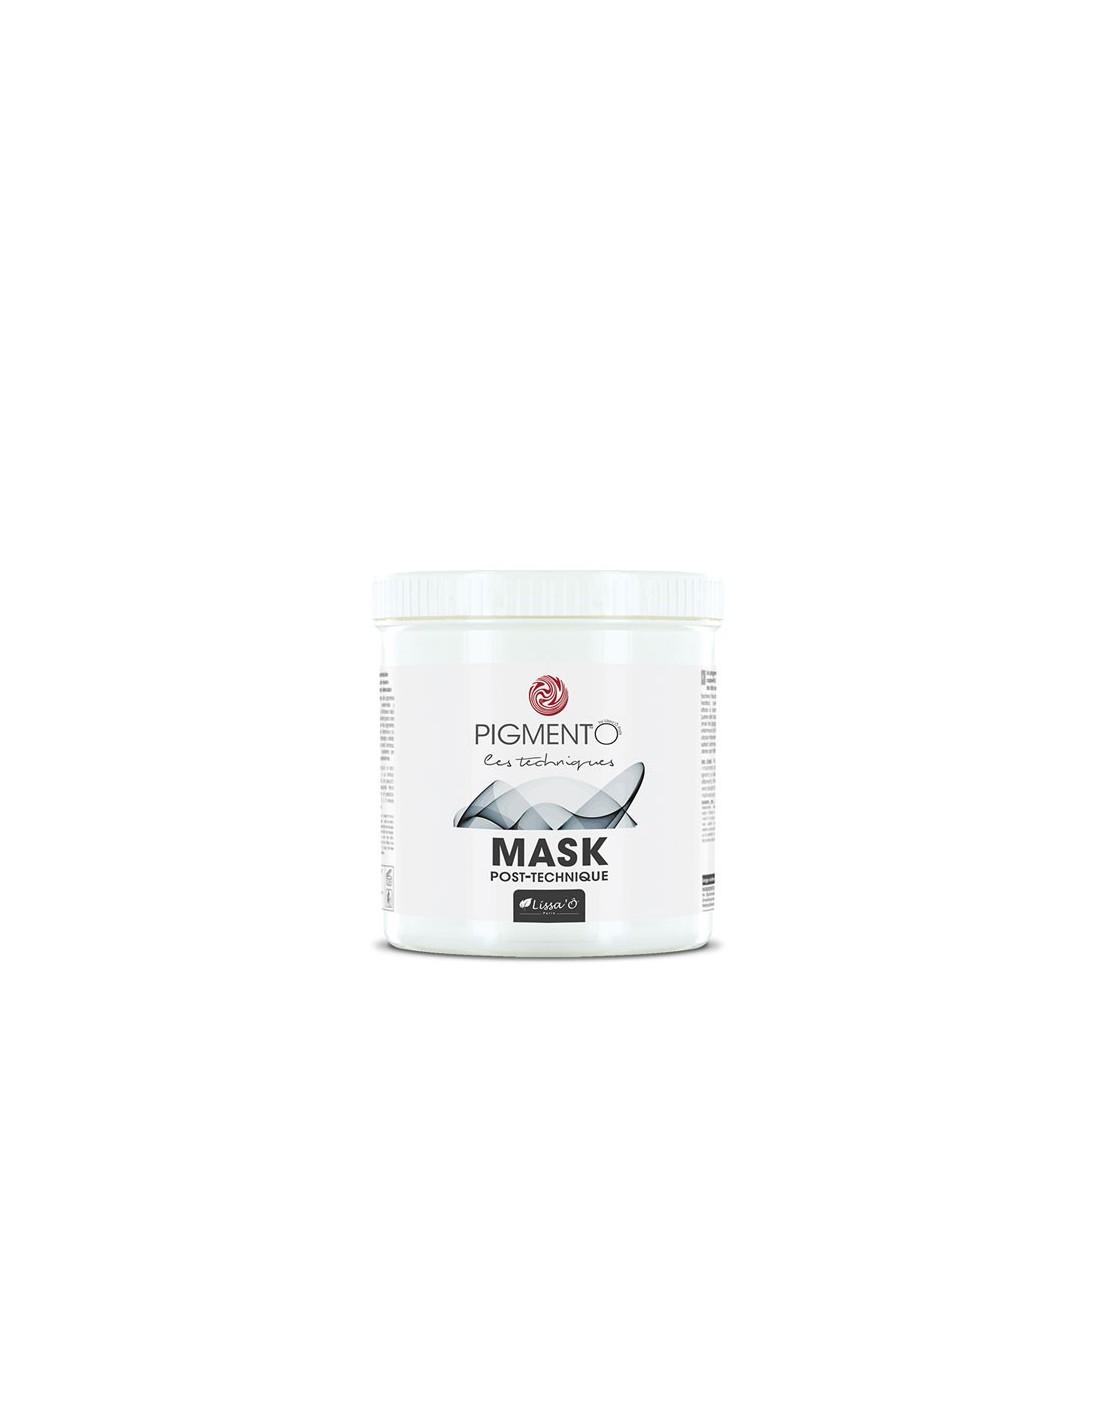 Pigmento - Masque Technique -1kg